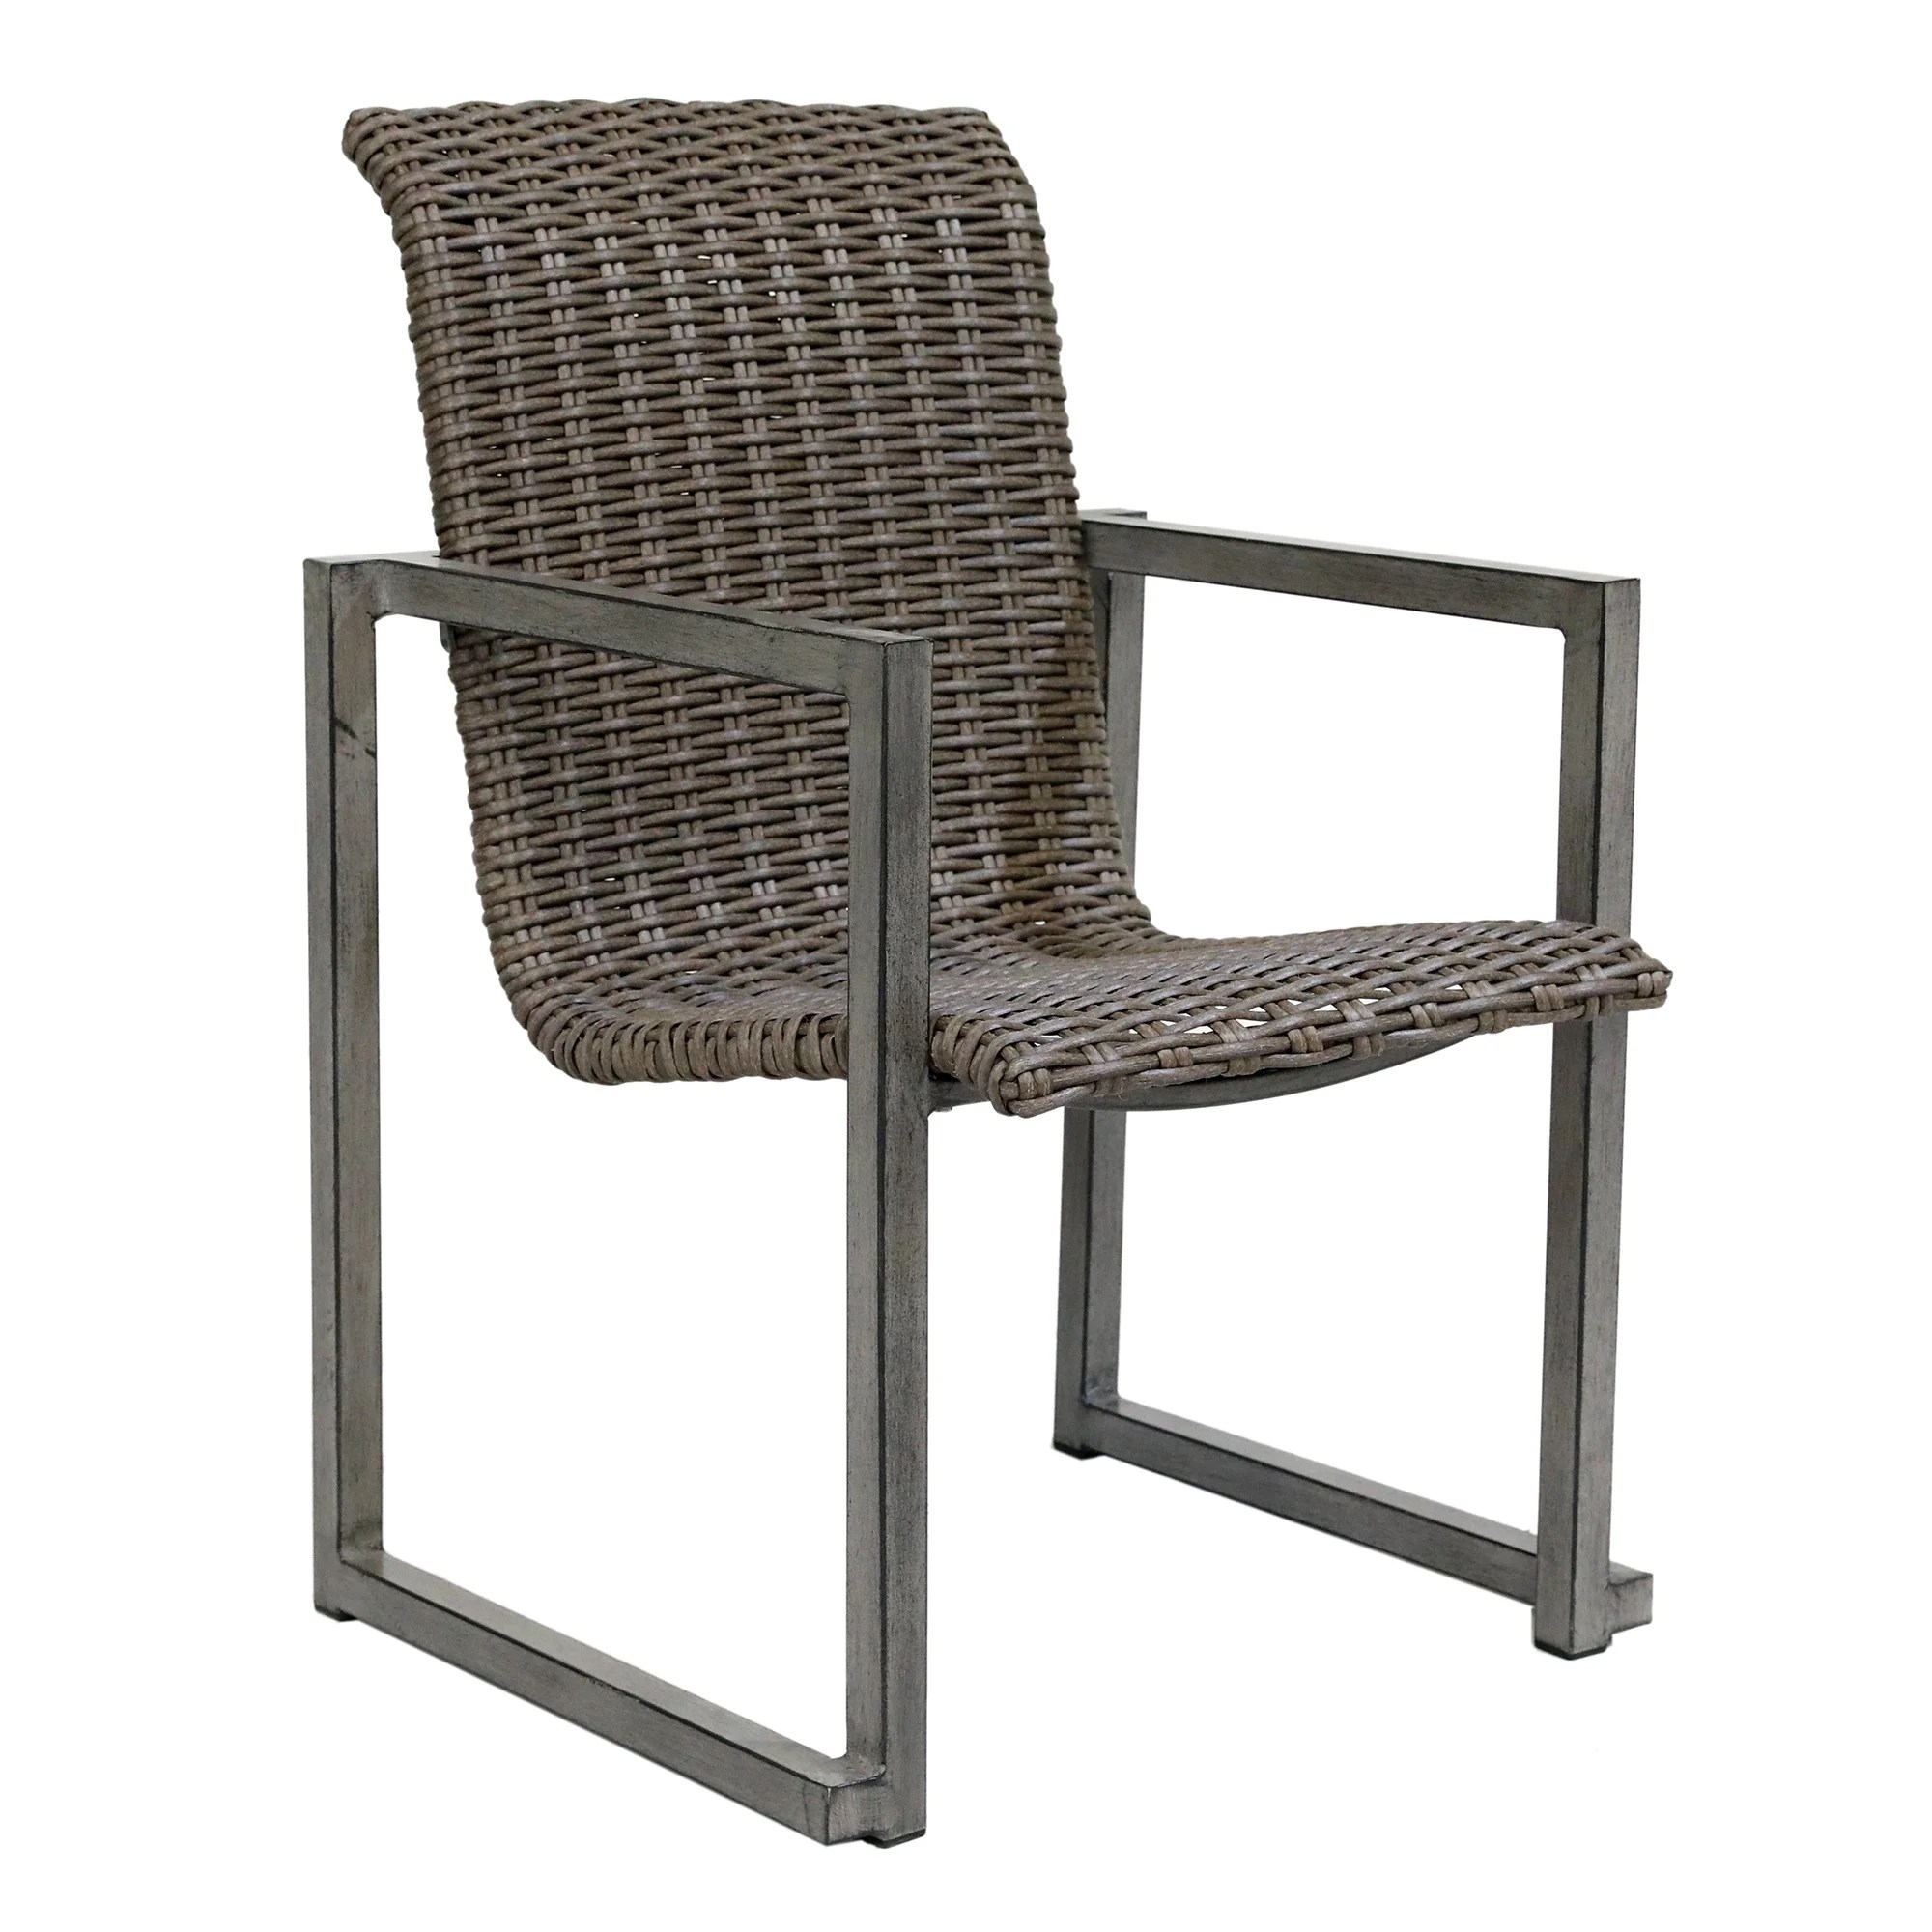 6 with arms wicker patio dining chairs